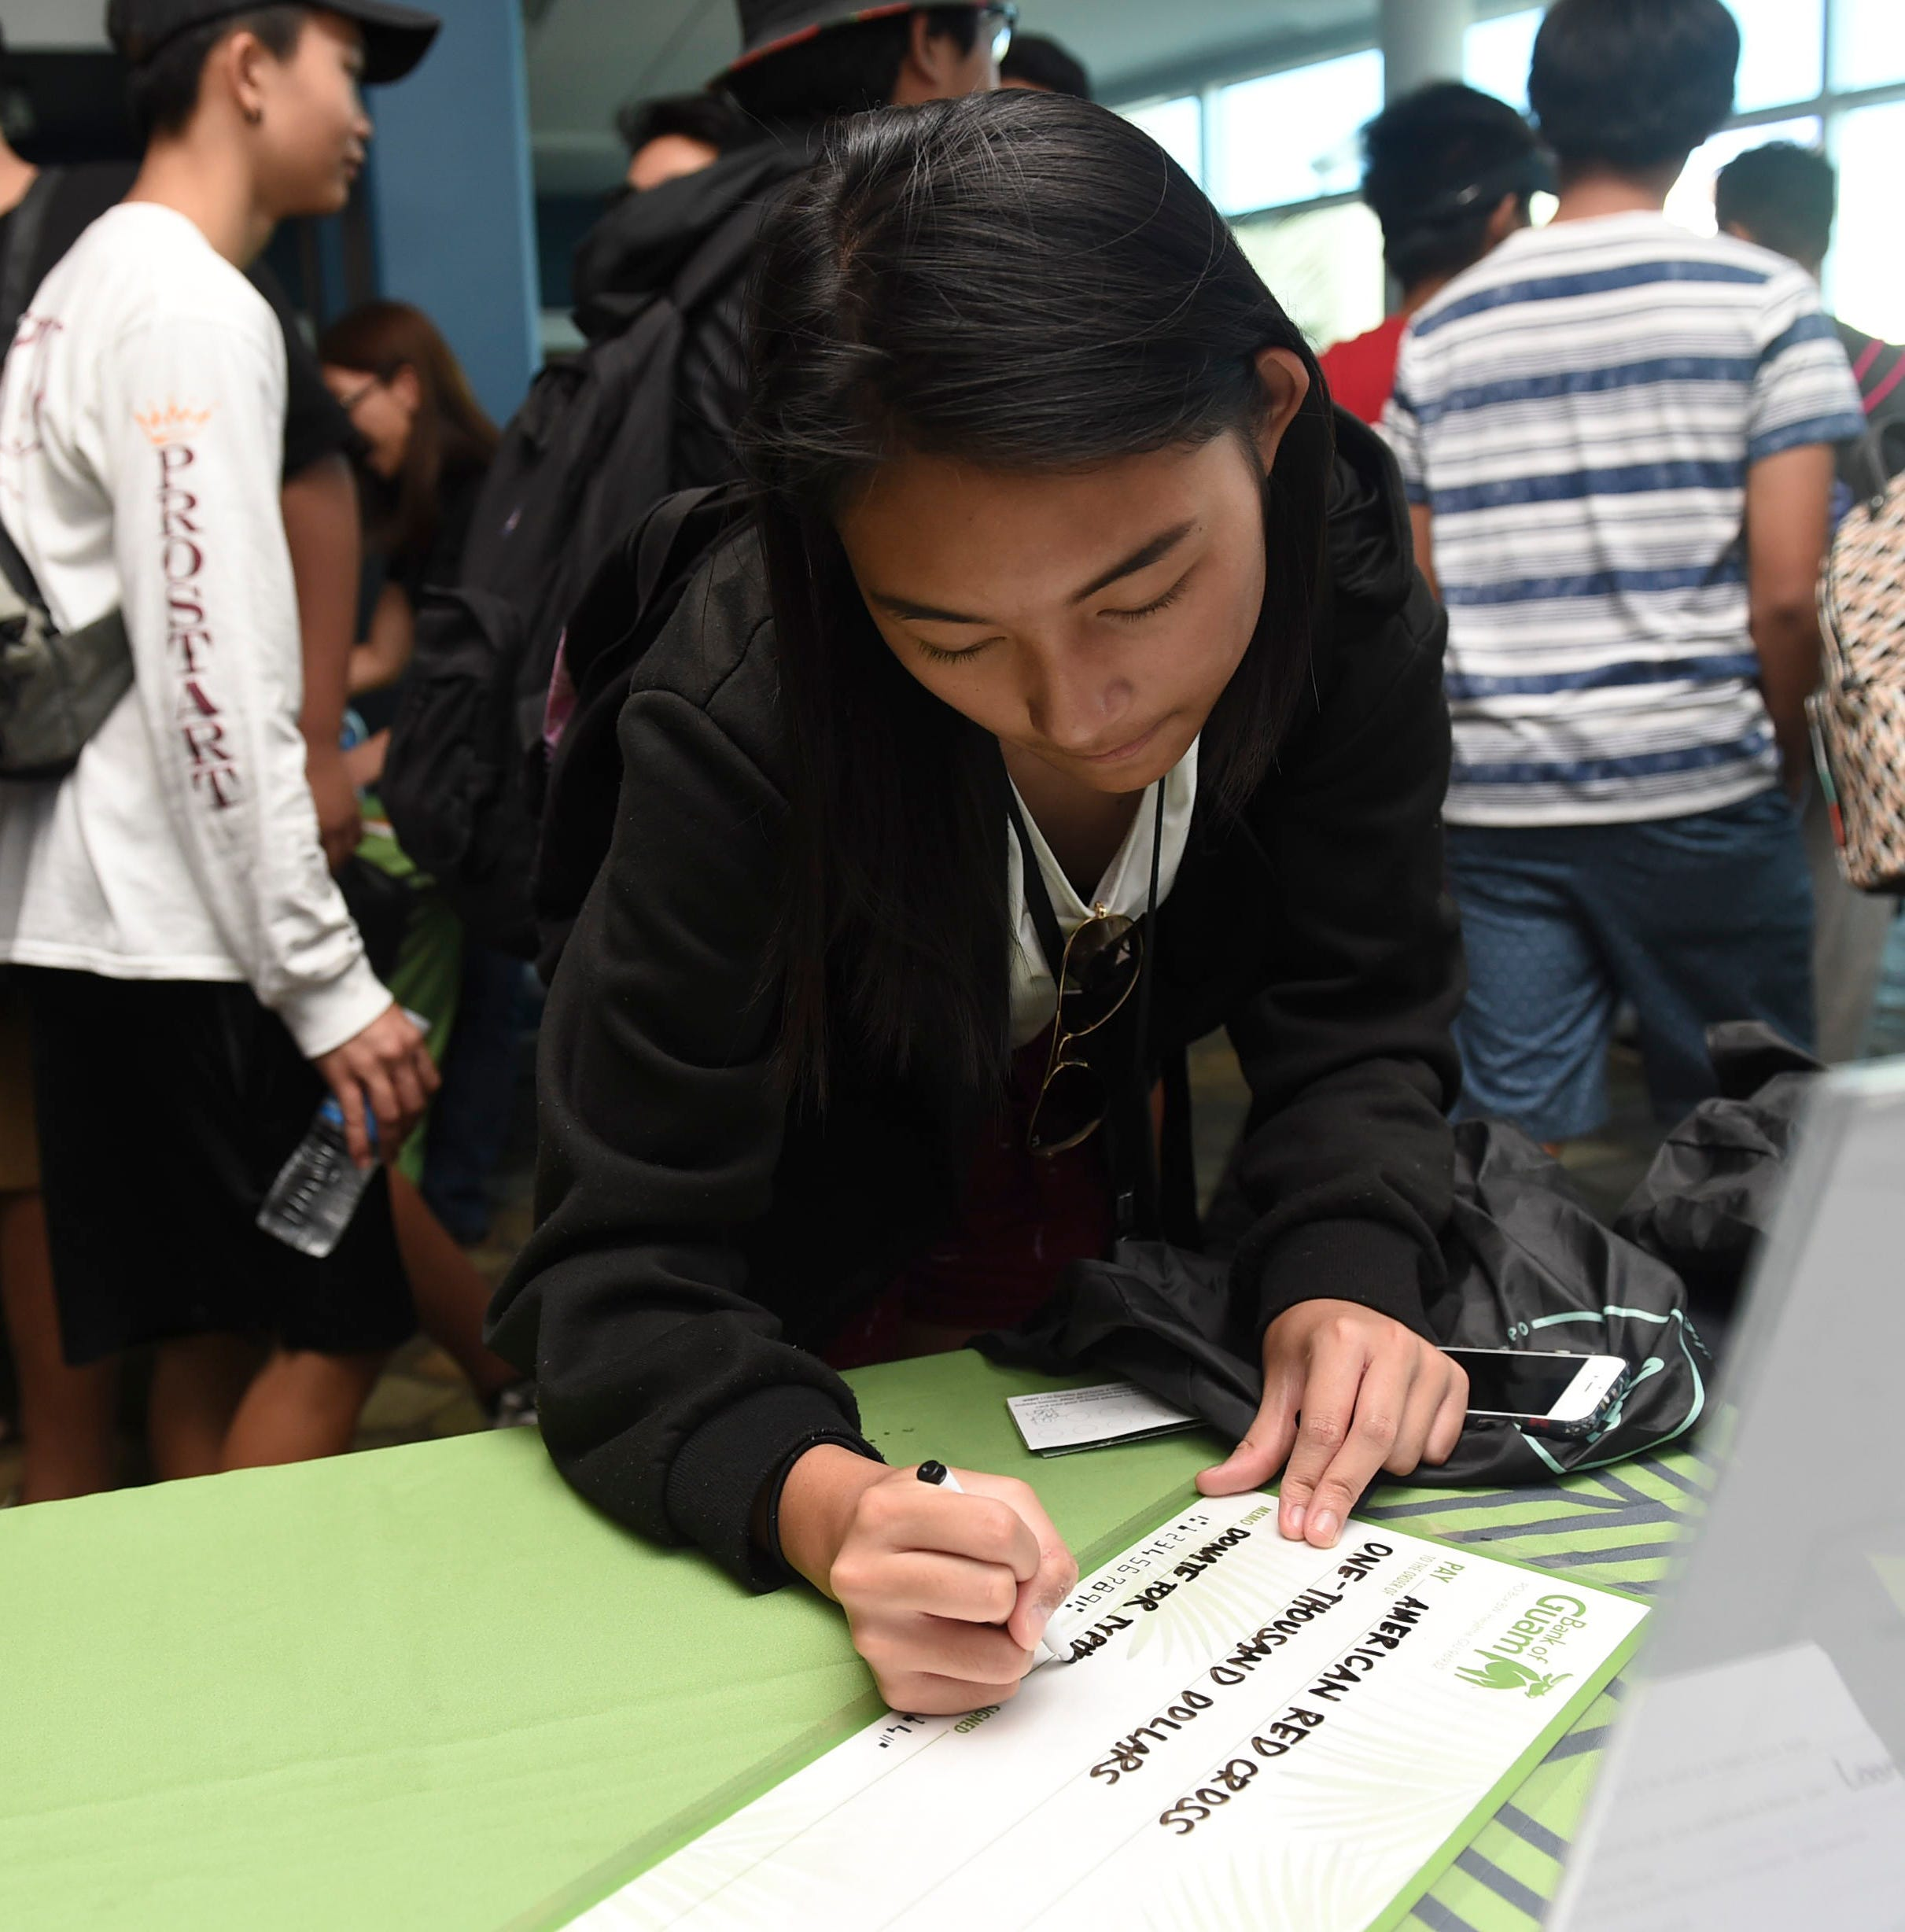 A teen learns how to write a check during the Bank of Guam's second annual Life Teen Expo at Skinner Plaza in Hagåtña in this Nov. 10, 2018, file photo. The 2021 Youth Employment Internship Program by Guam Department of Education's and the Department of Youth Affairs will run June 21 to Aug. 13.